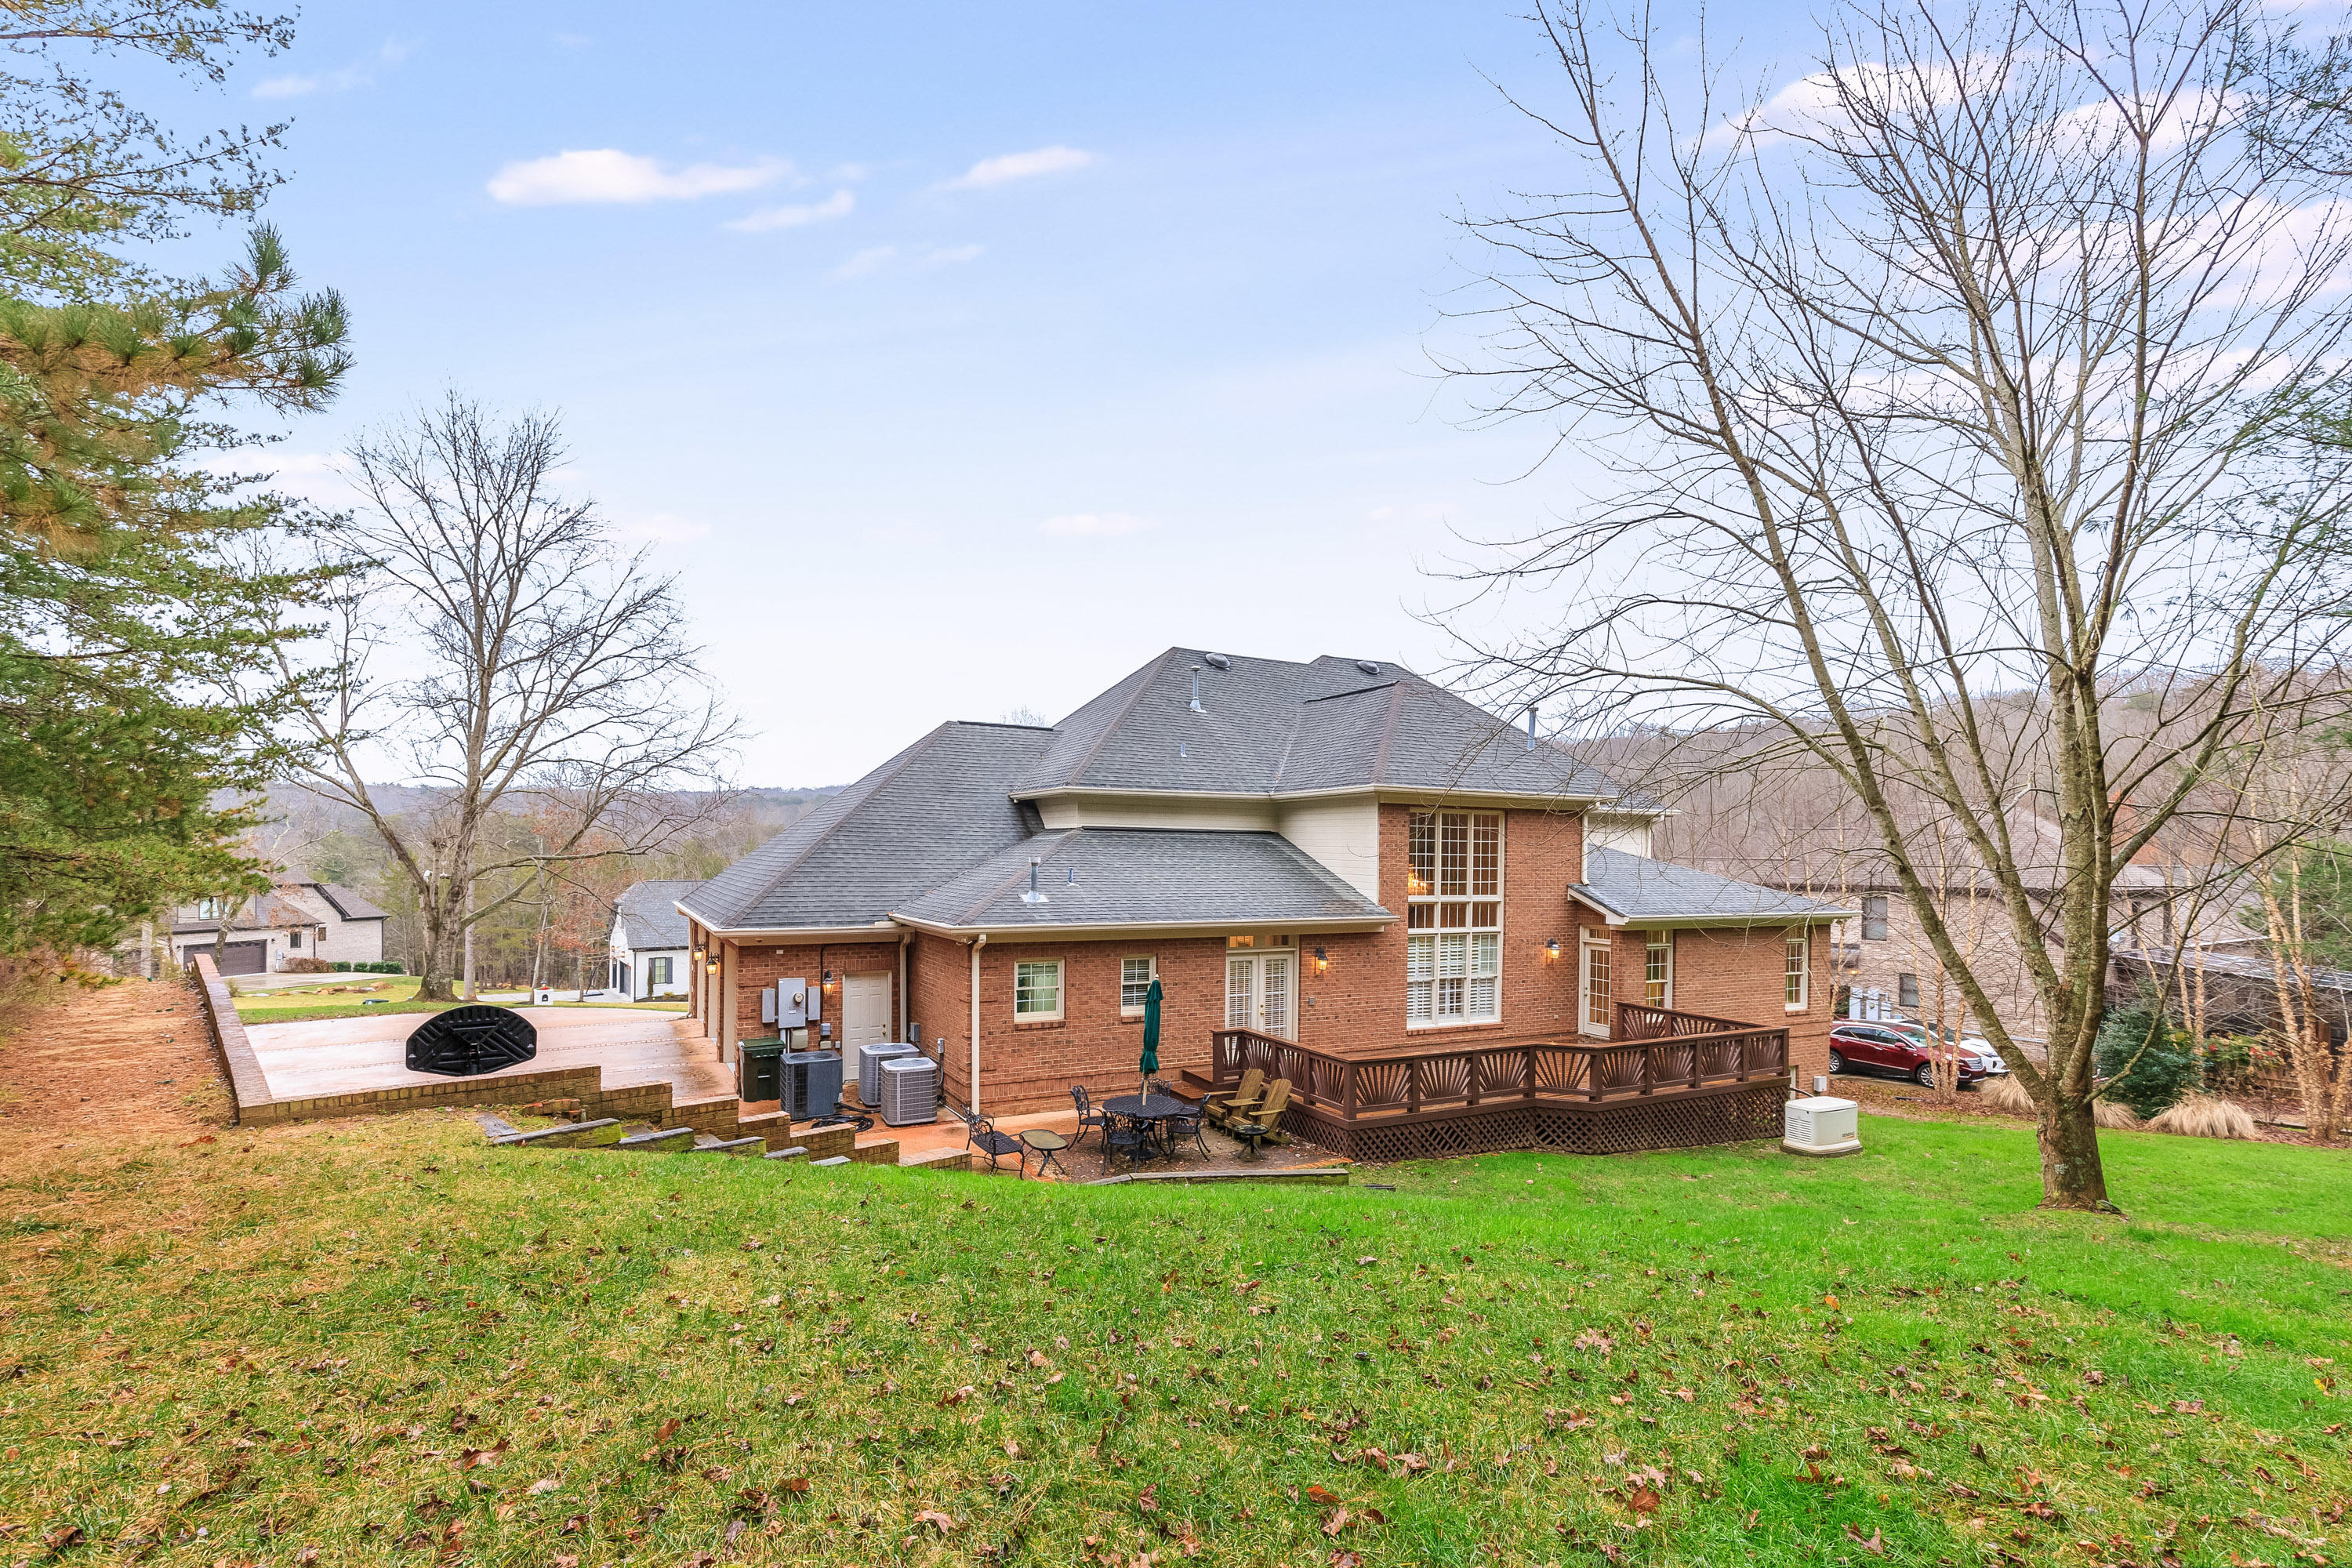 18 Ridgerock Dr, Signal Mountain, TN 37377